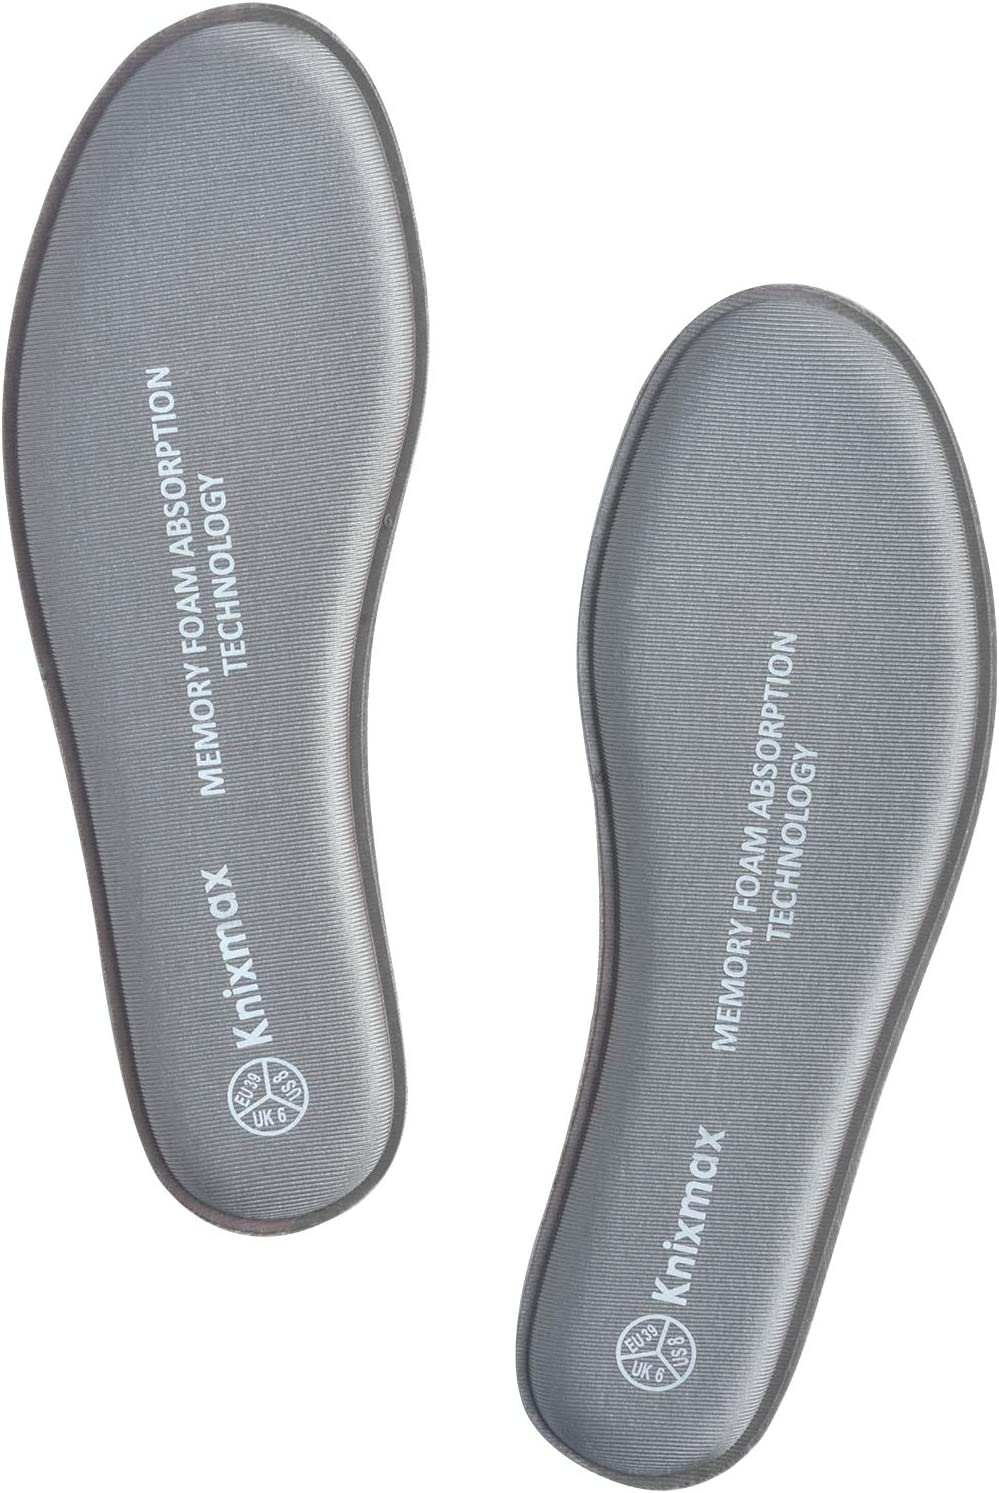 Knixmax 2 Pairs of Comfort Insoles for Men Women Kids Replacement Inner Soles for Trainers Walking Shoes Work Boots